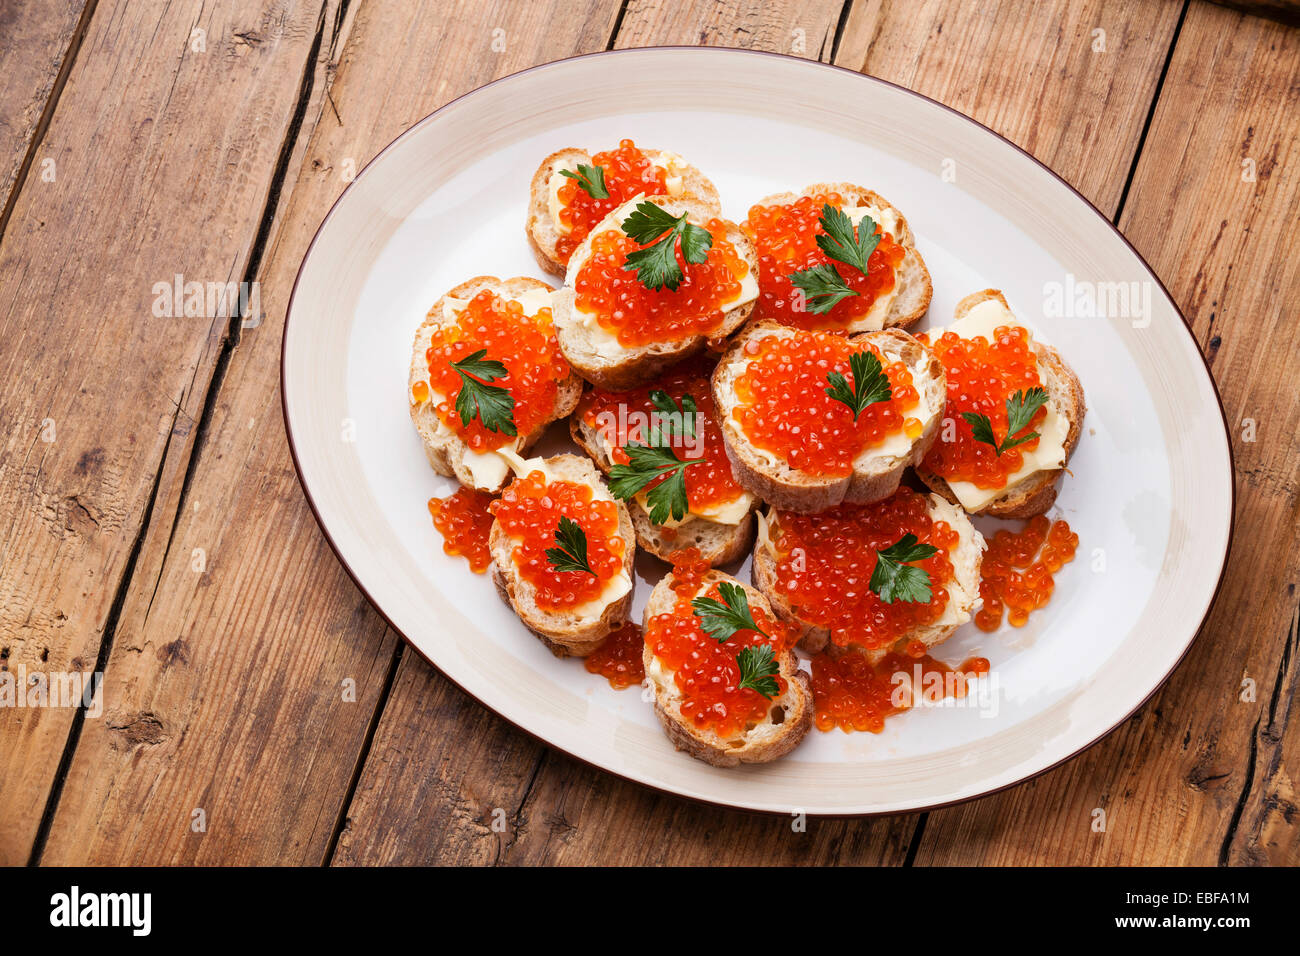 Sandwiches with Salmon red caviar and parsley on white plate on wooden background - Stock Image